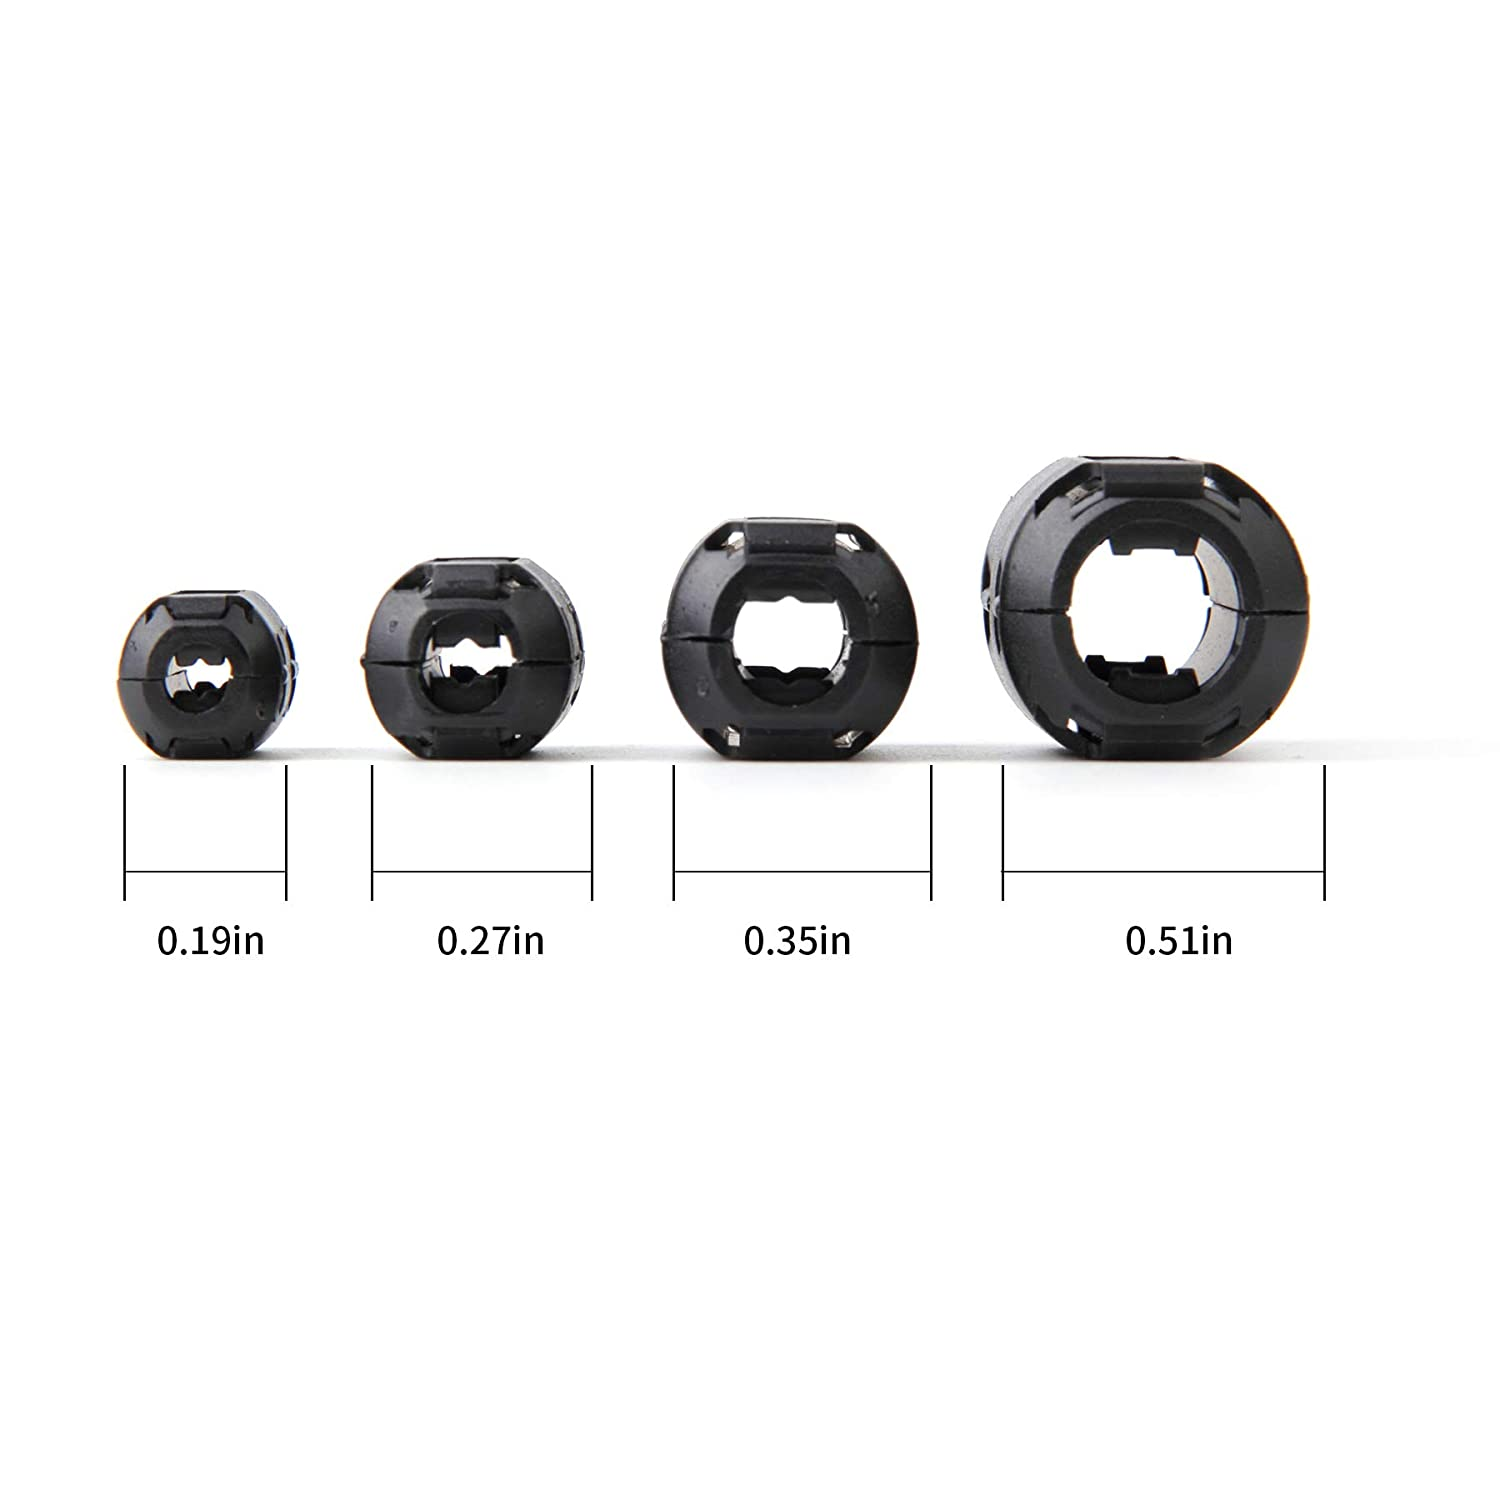 Ferrite Ring Core Black RFI EMI Noise Suppressor Cable Clip-20Pcs JIAKAI